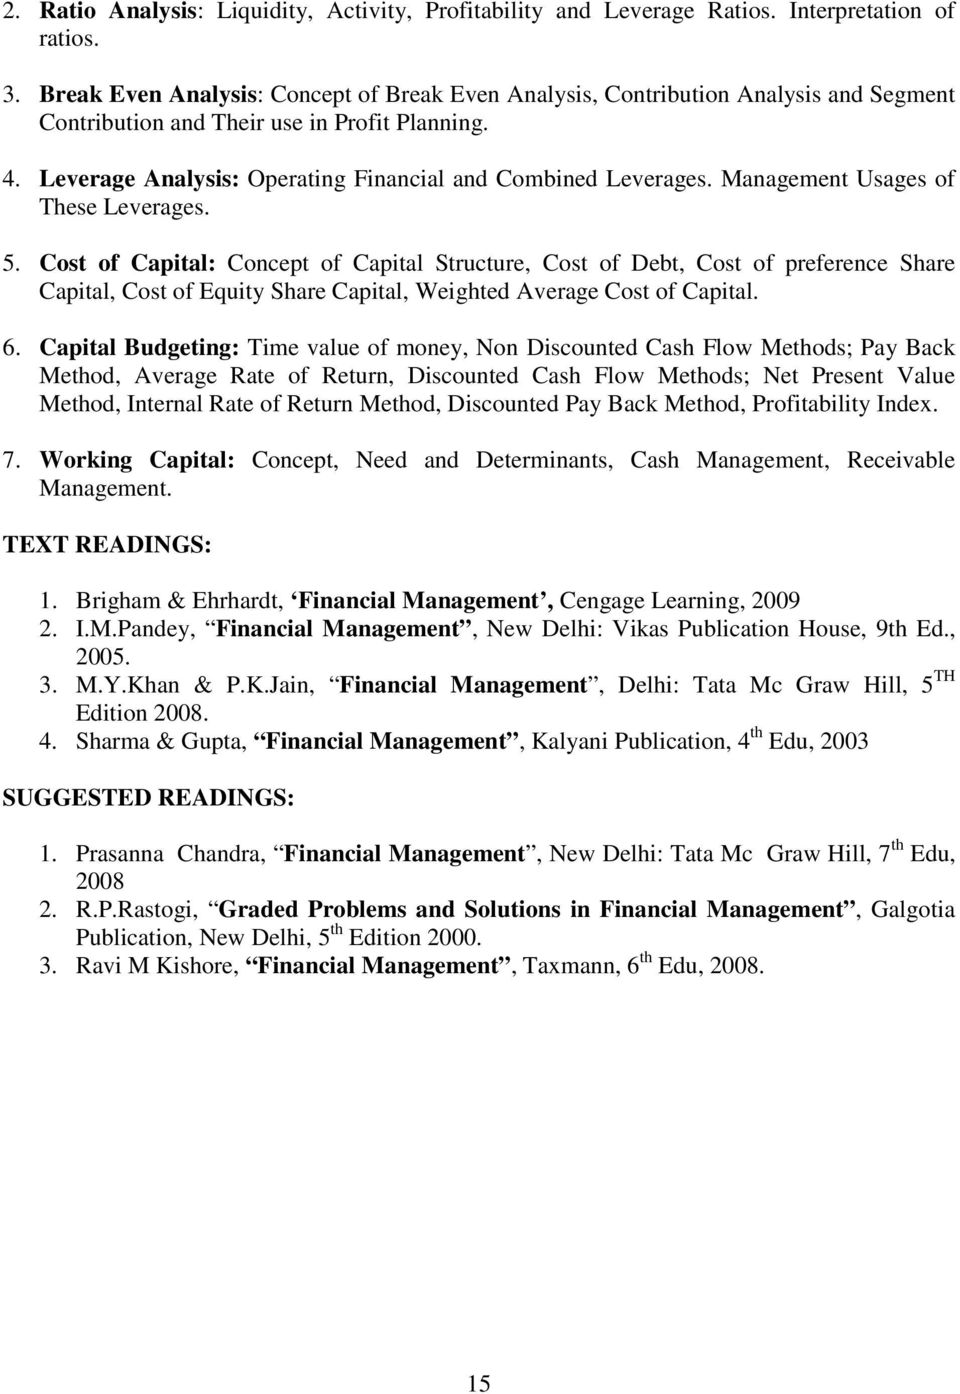 Management Usages of These Leverages. 5. Cost of Capital: Concept of Capital Structure, Cost of Debt, Cost of preference Share Capital, Cost of Equity Share Capital, Weighted Average Cost of Capital.